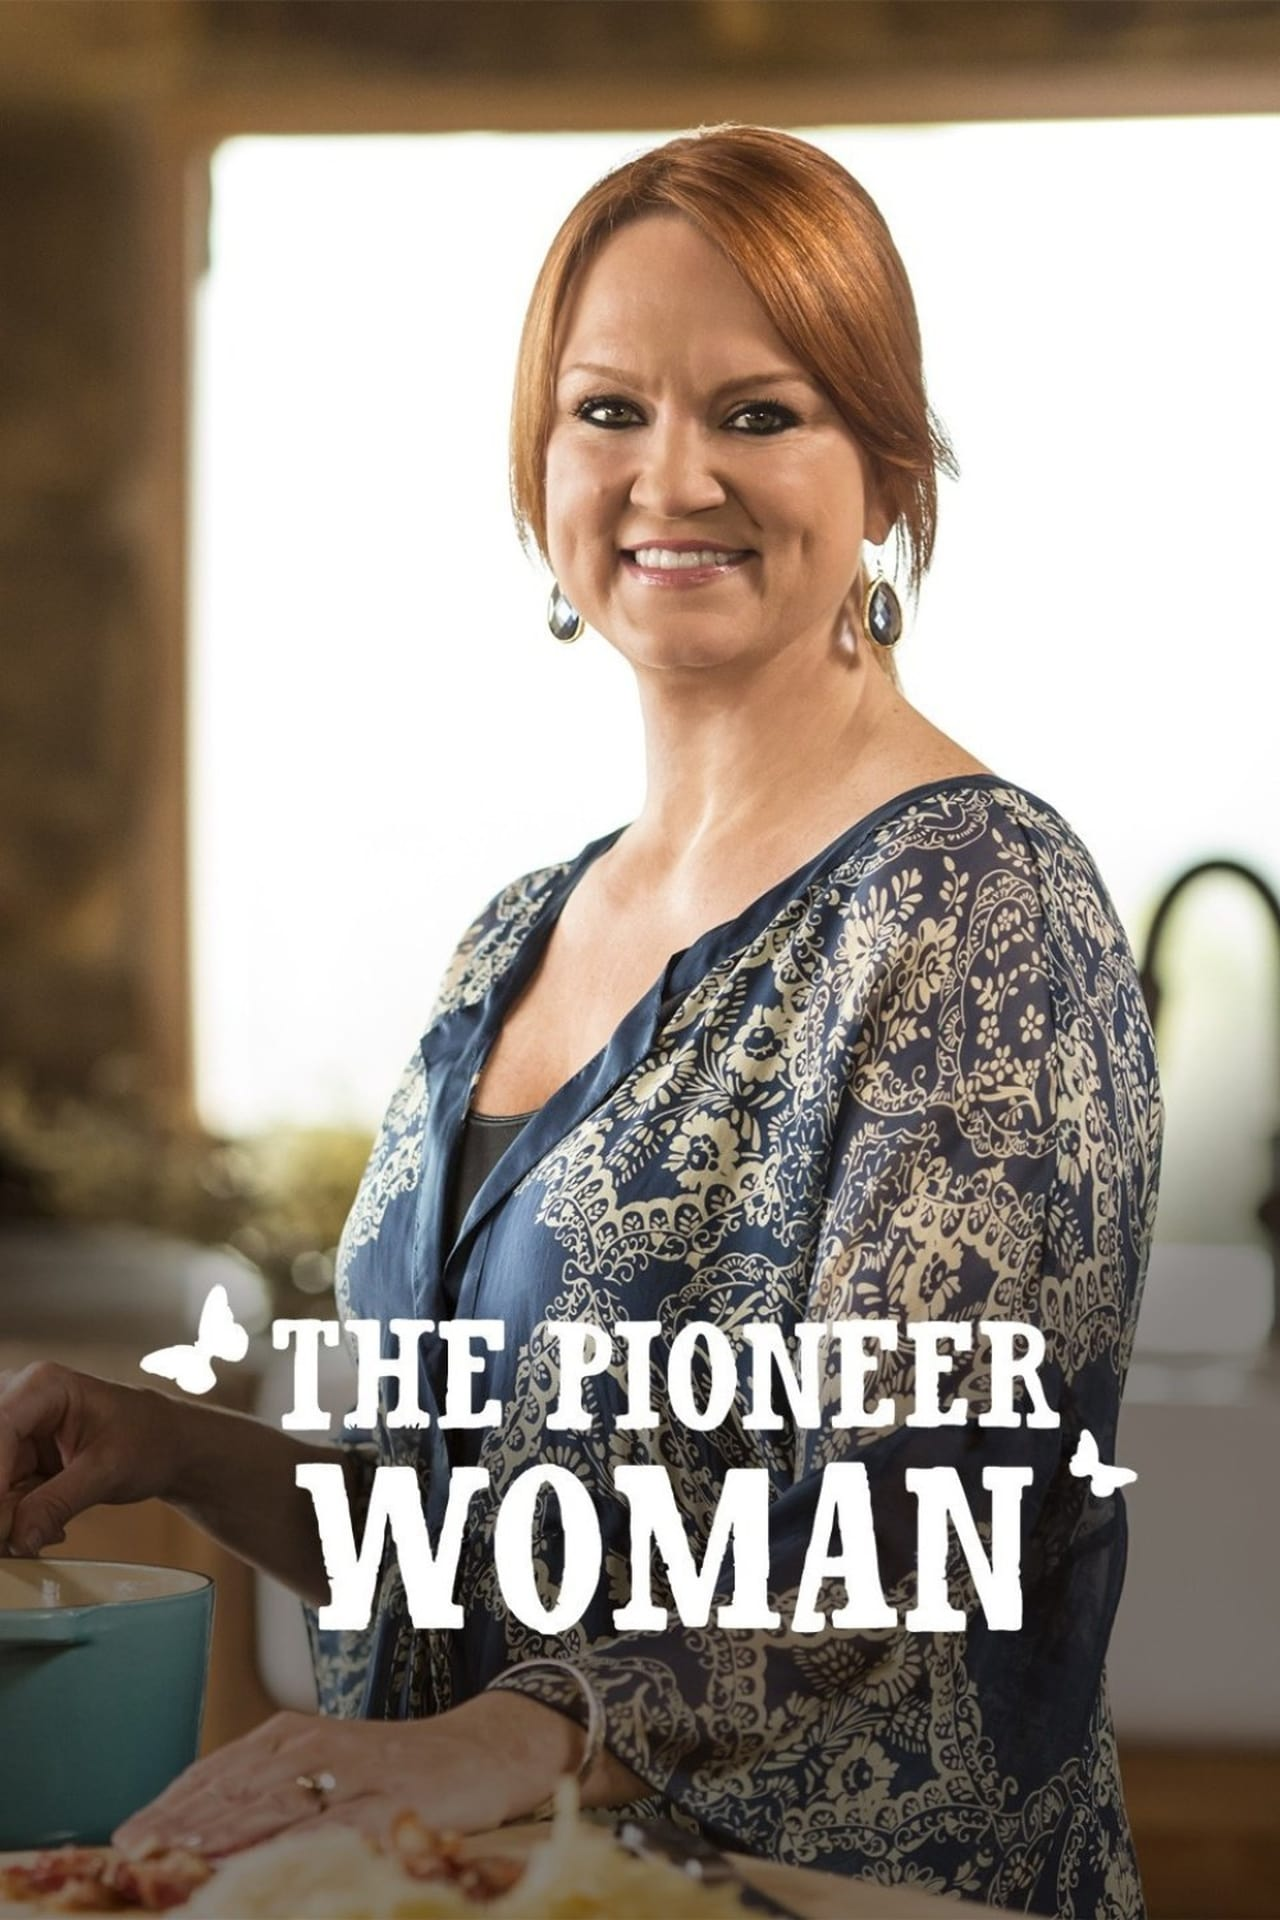 Putlocker The Pioneer Woman Season 1 (2011)